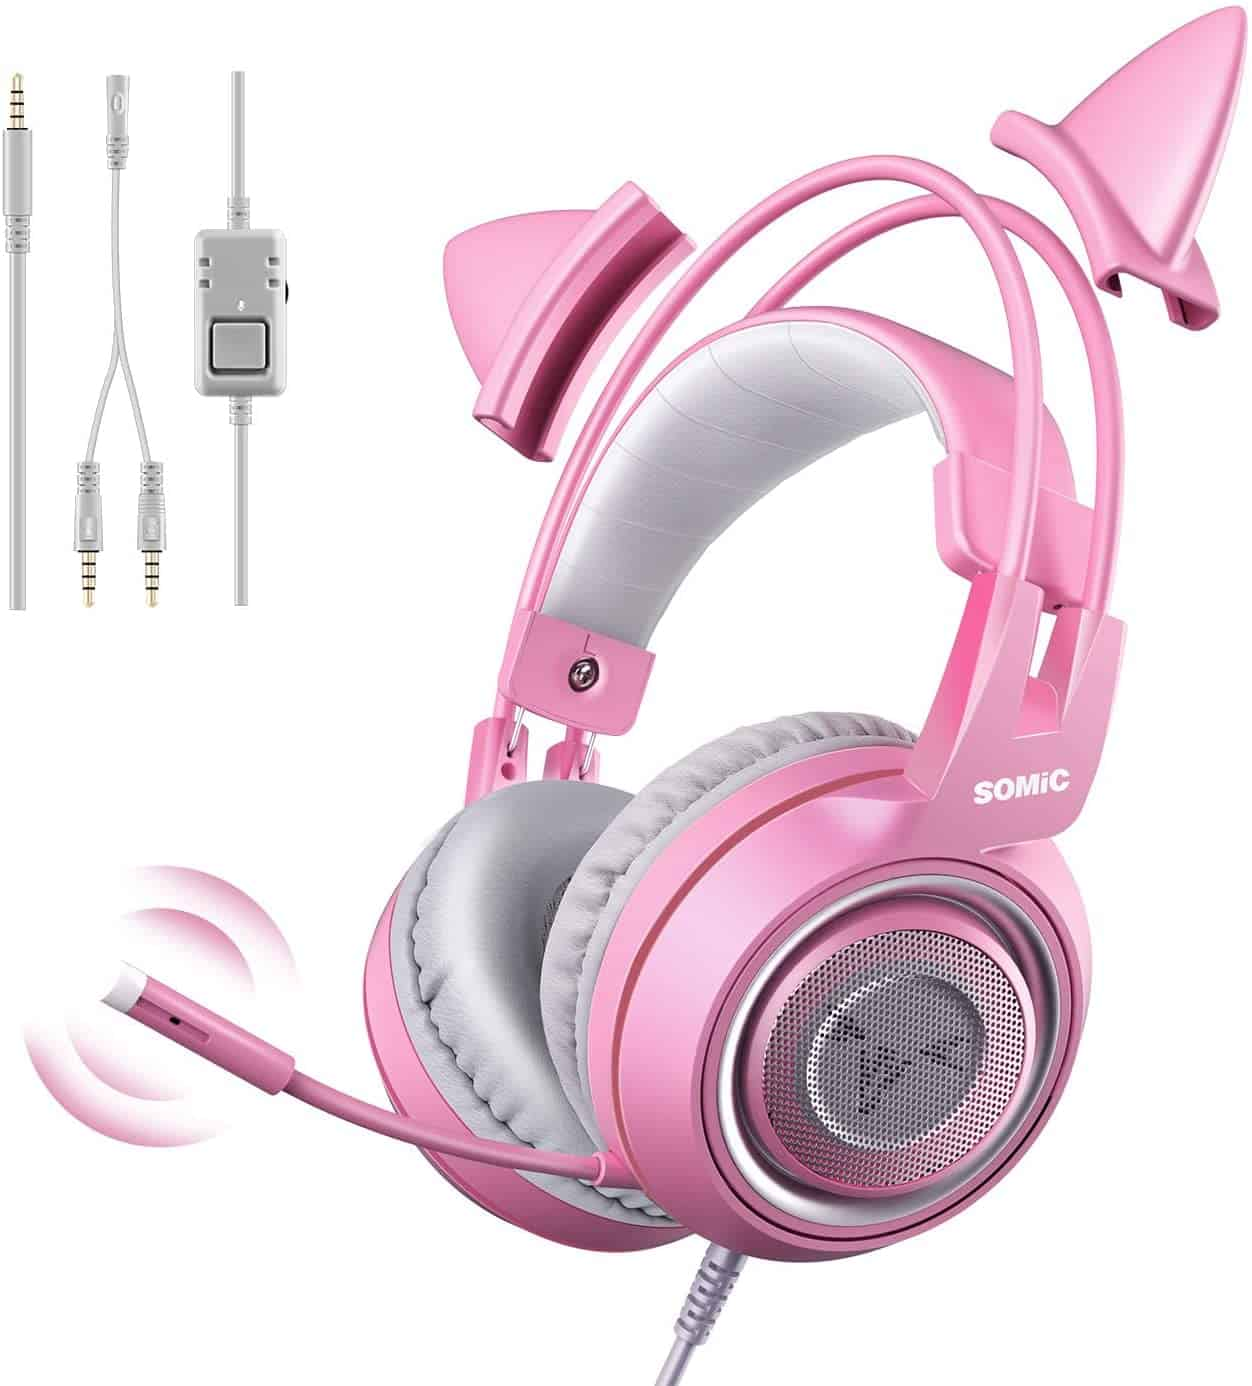 Somic G951s gaming headset with mic